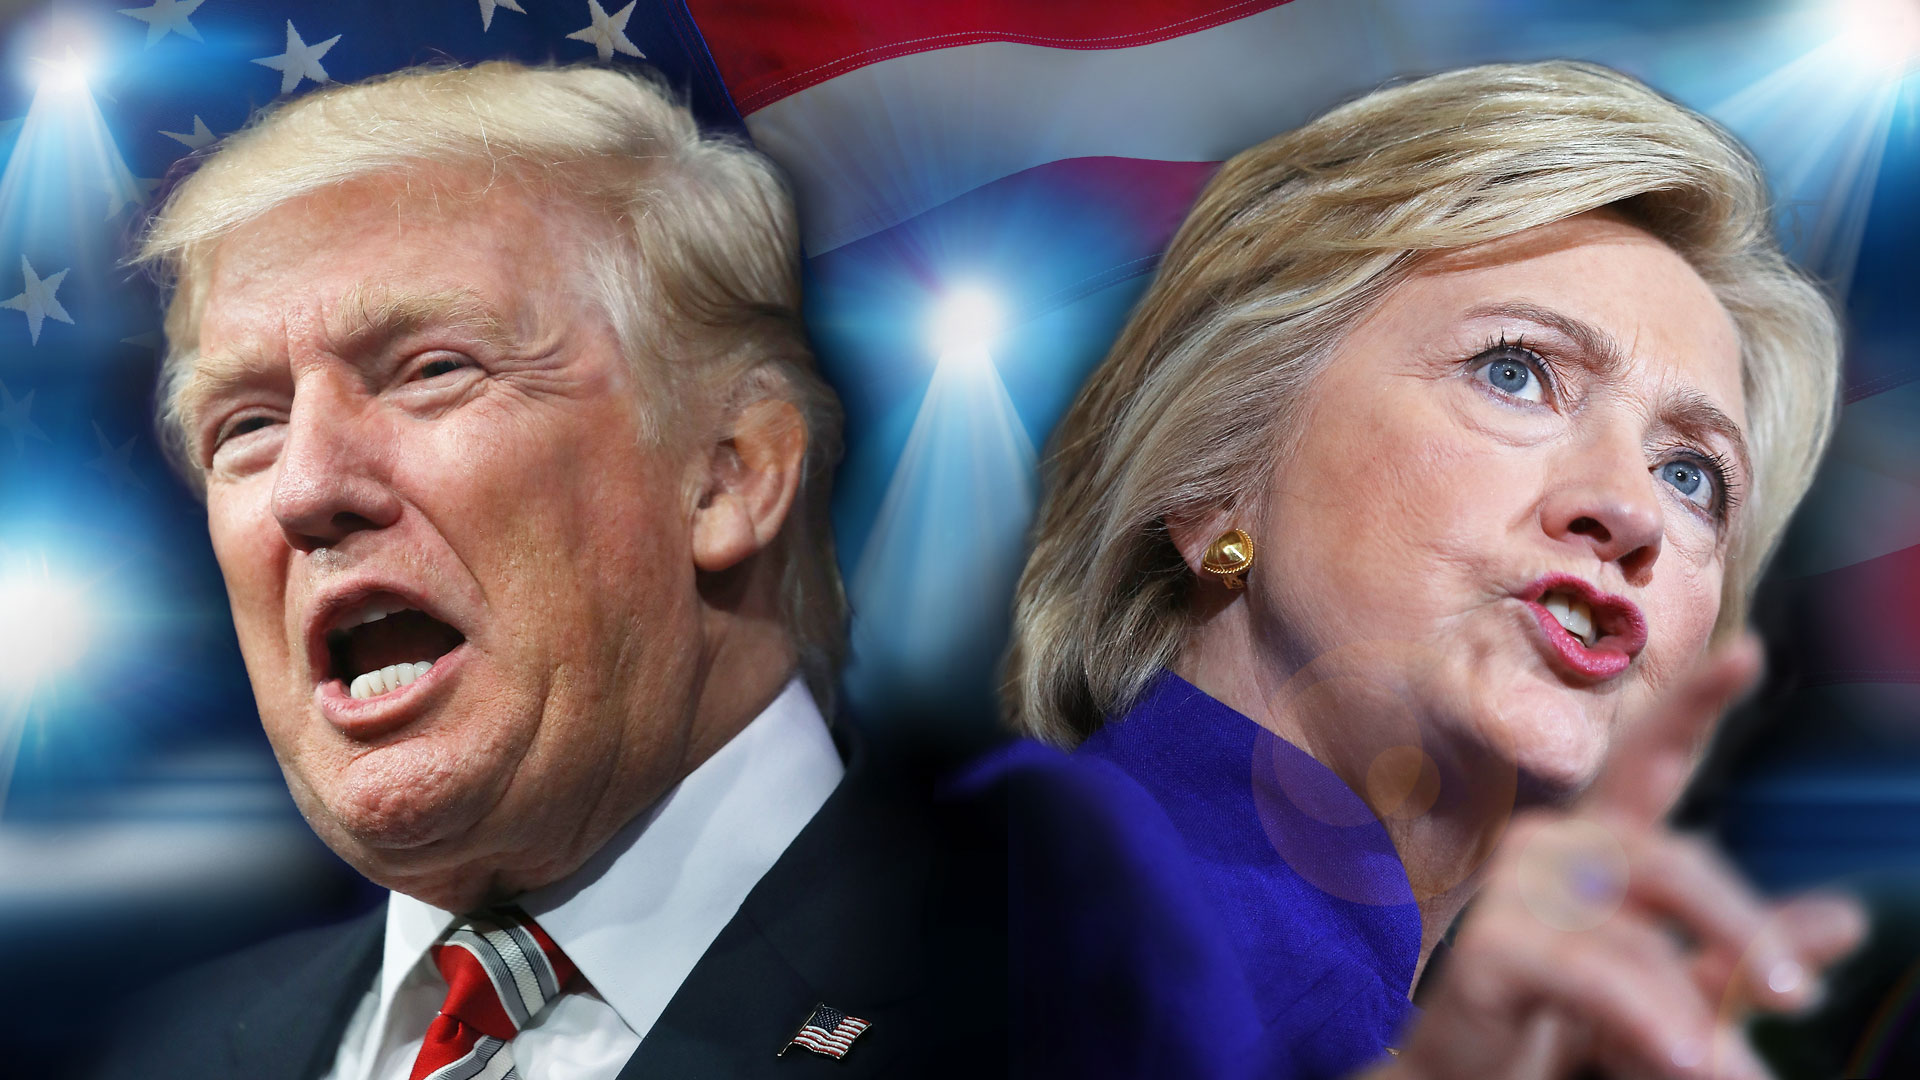 Trump vs Clinton Live: US Presidential Debate